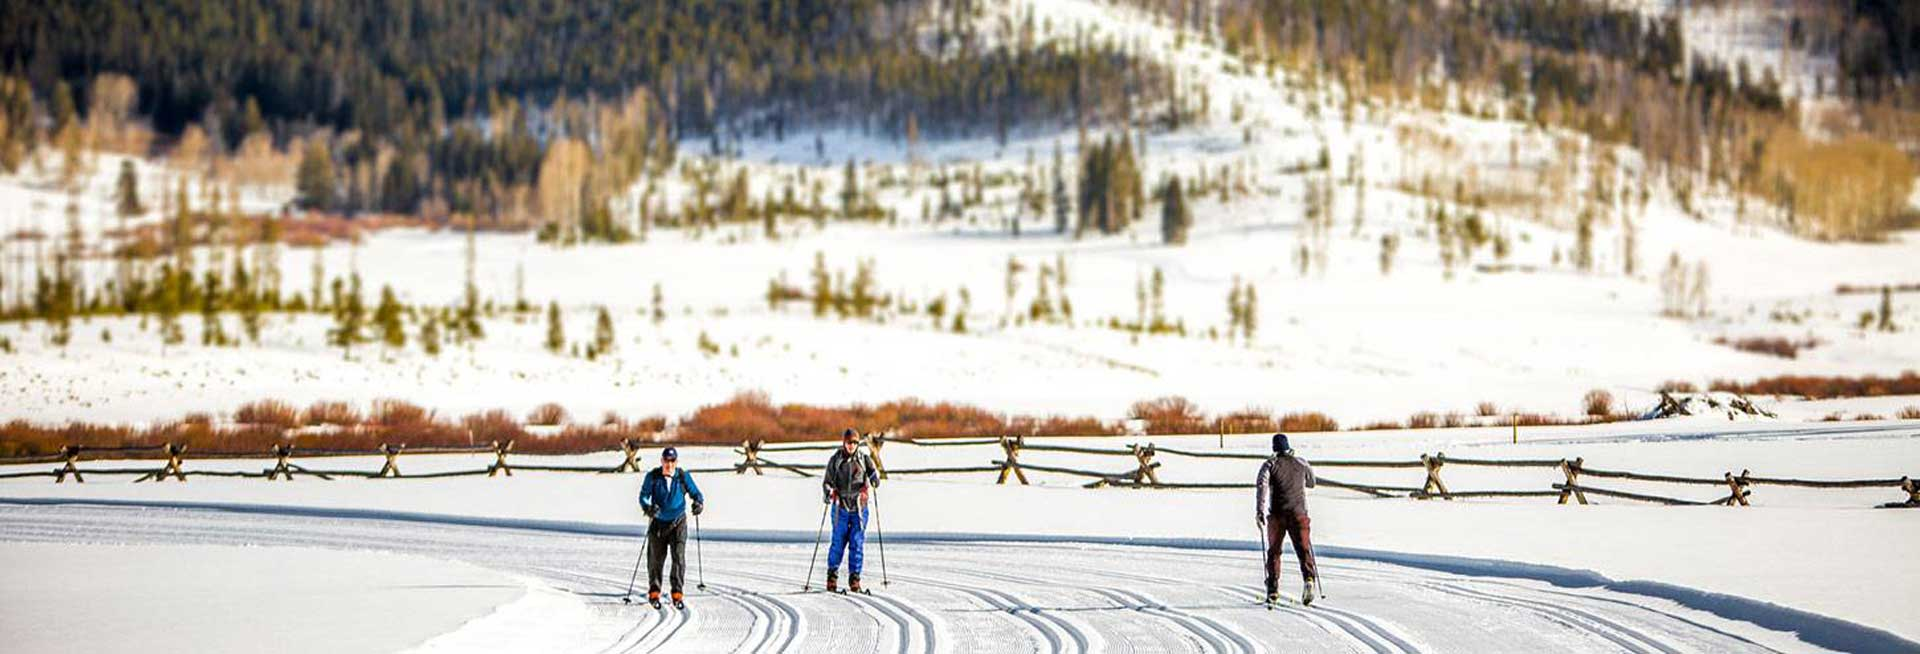 Cross country skiers on trail.